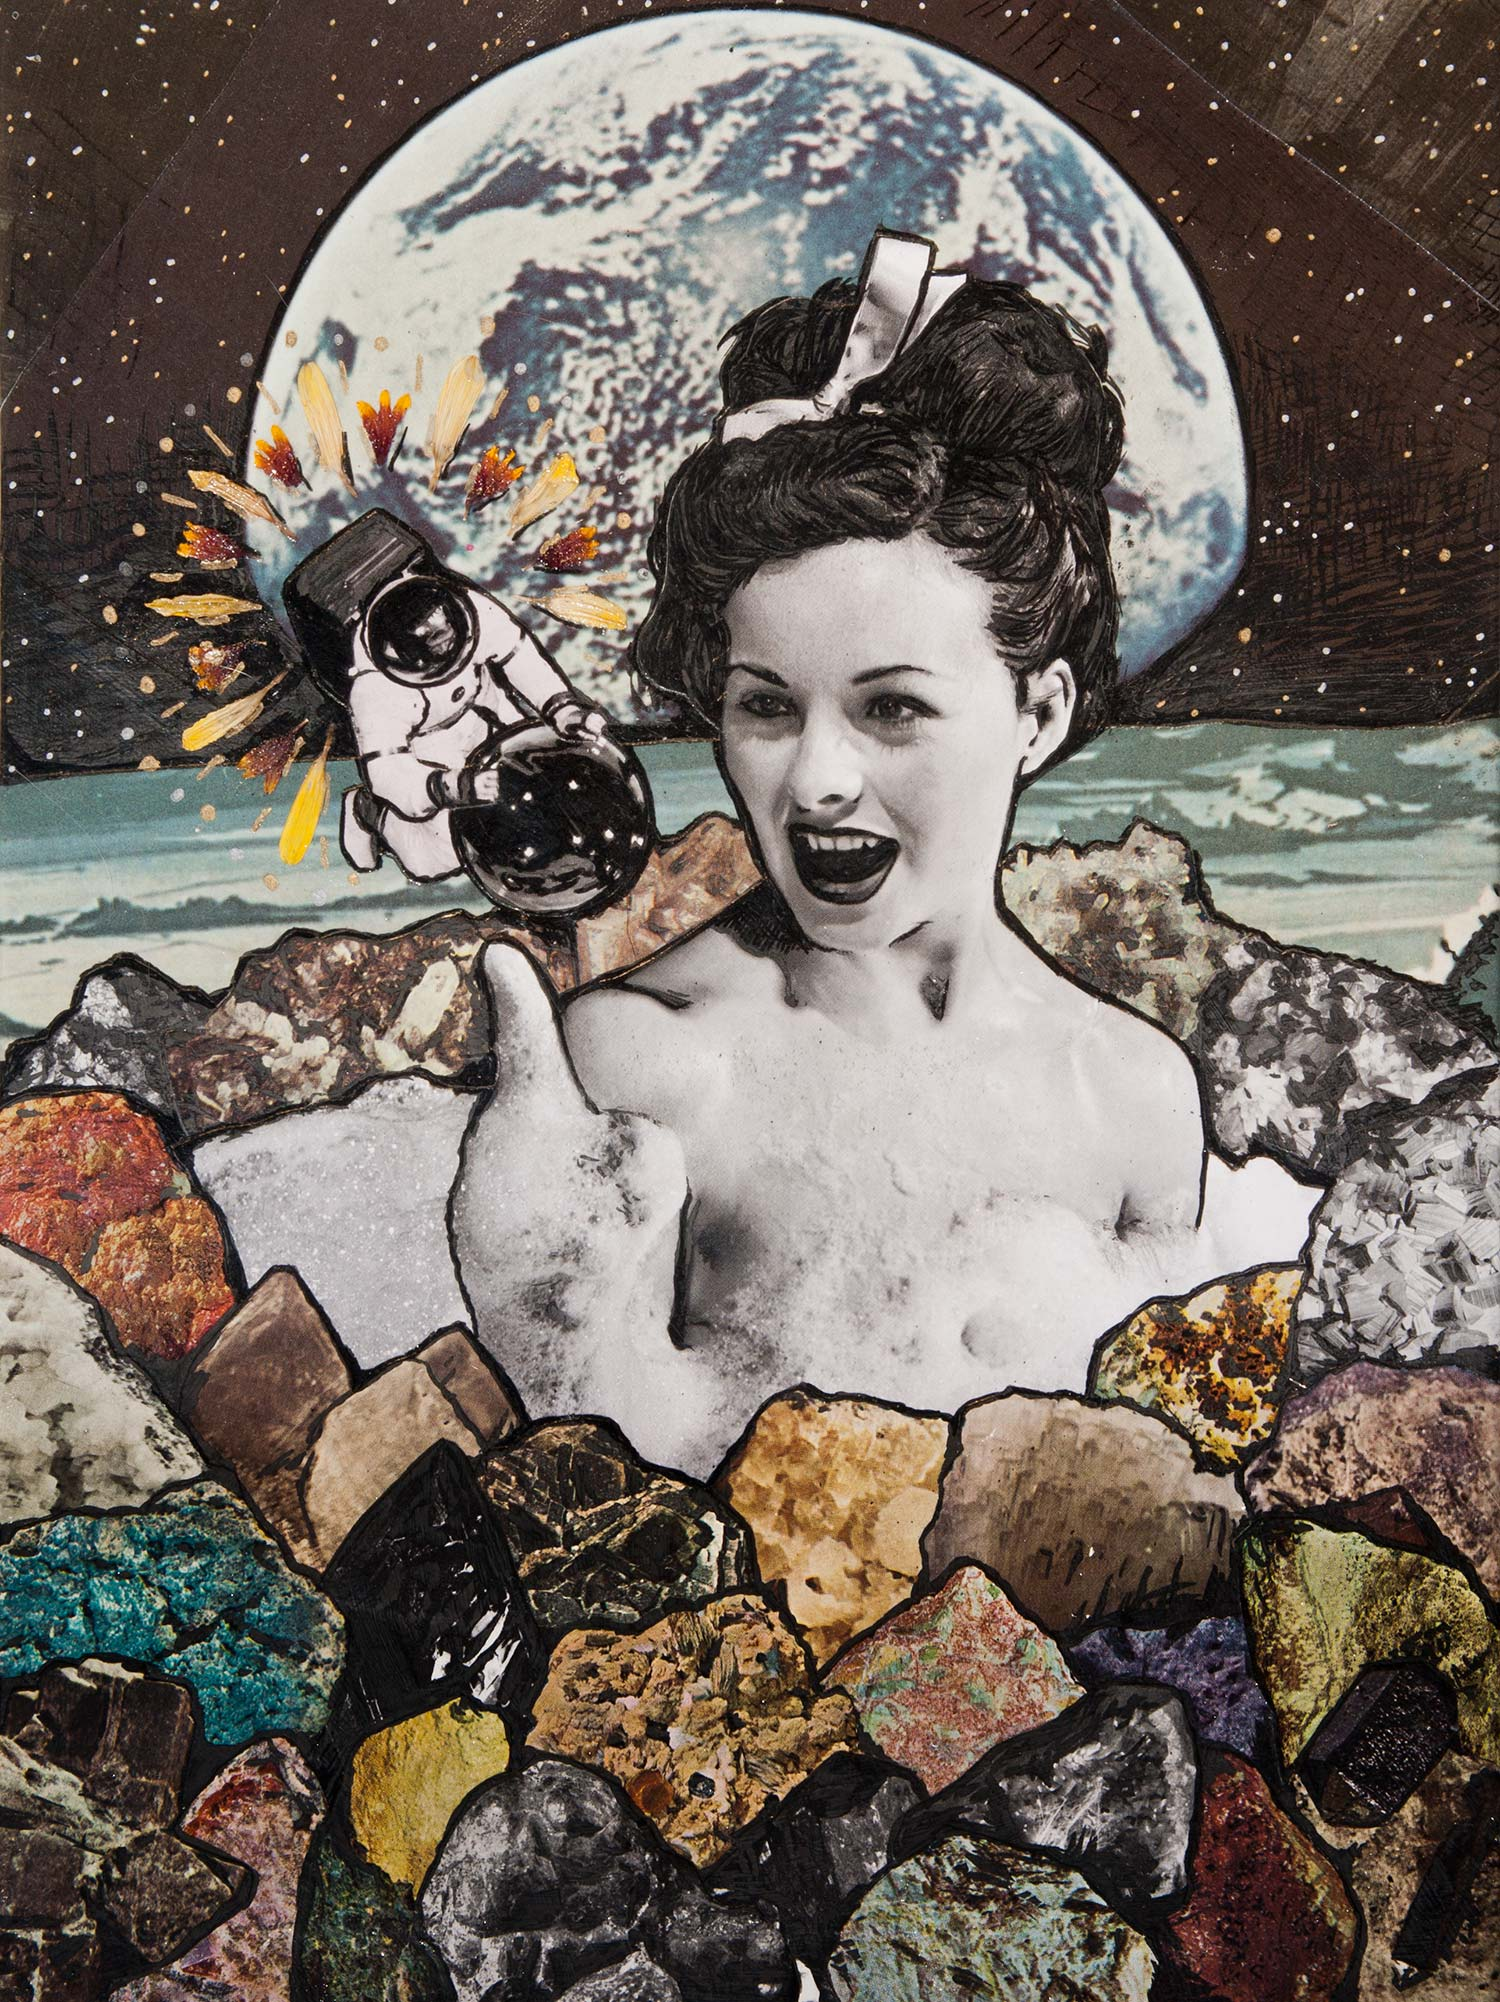 Jordan Westre collage - Space Babe